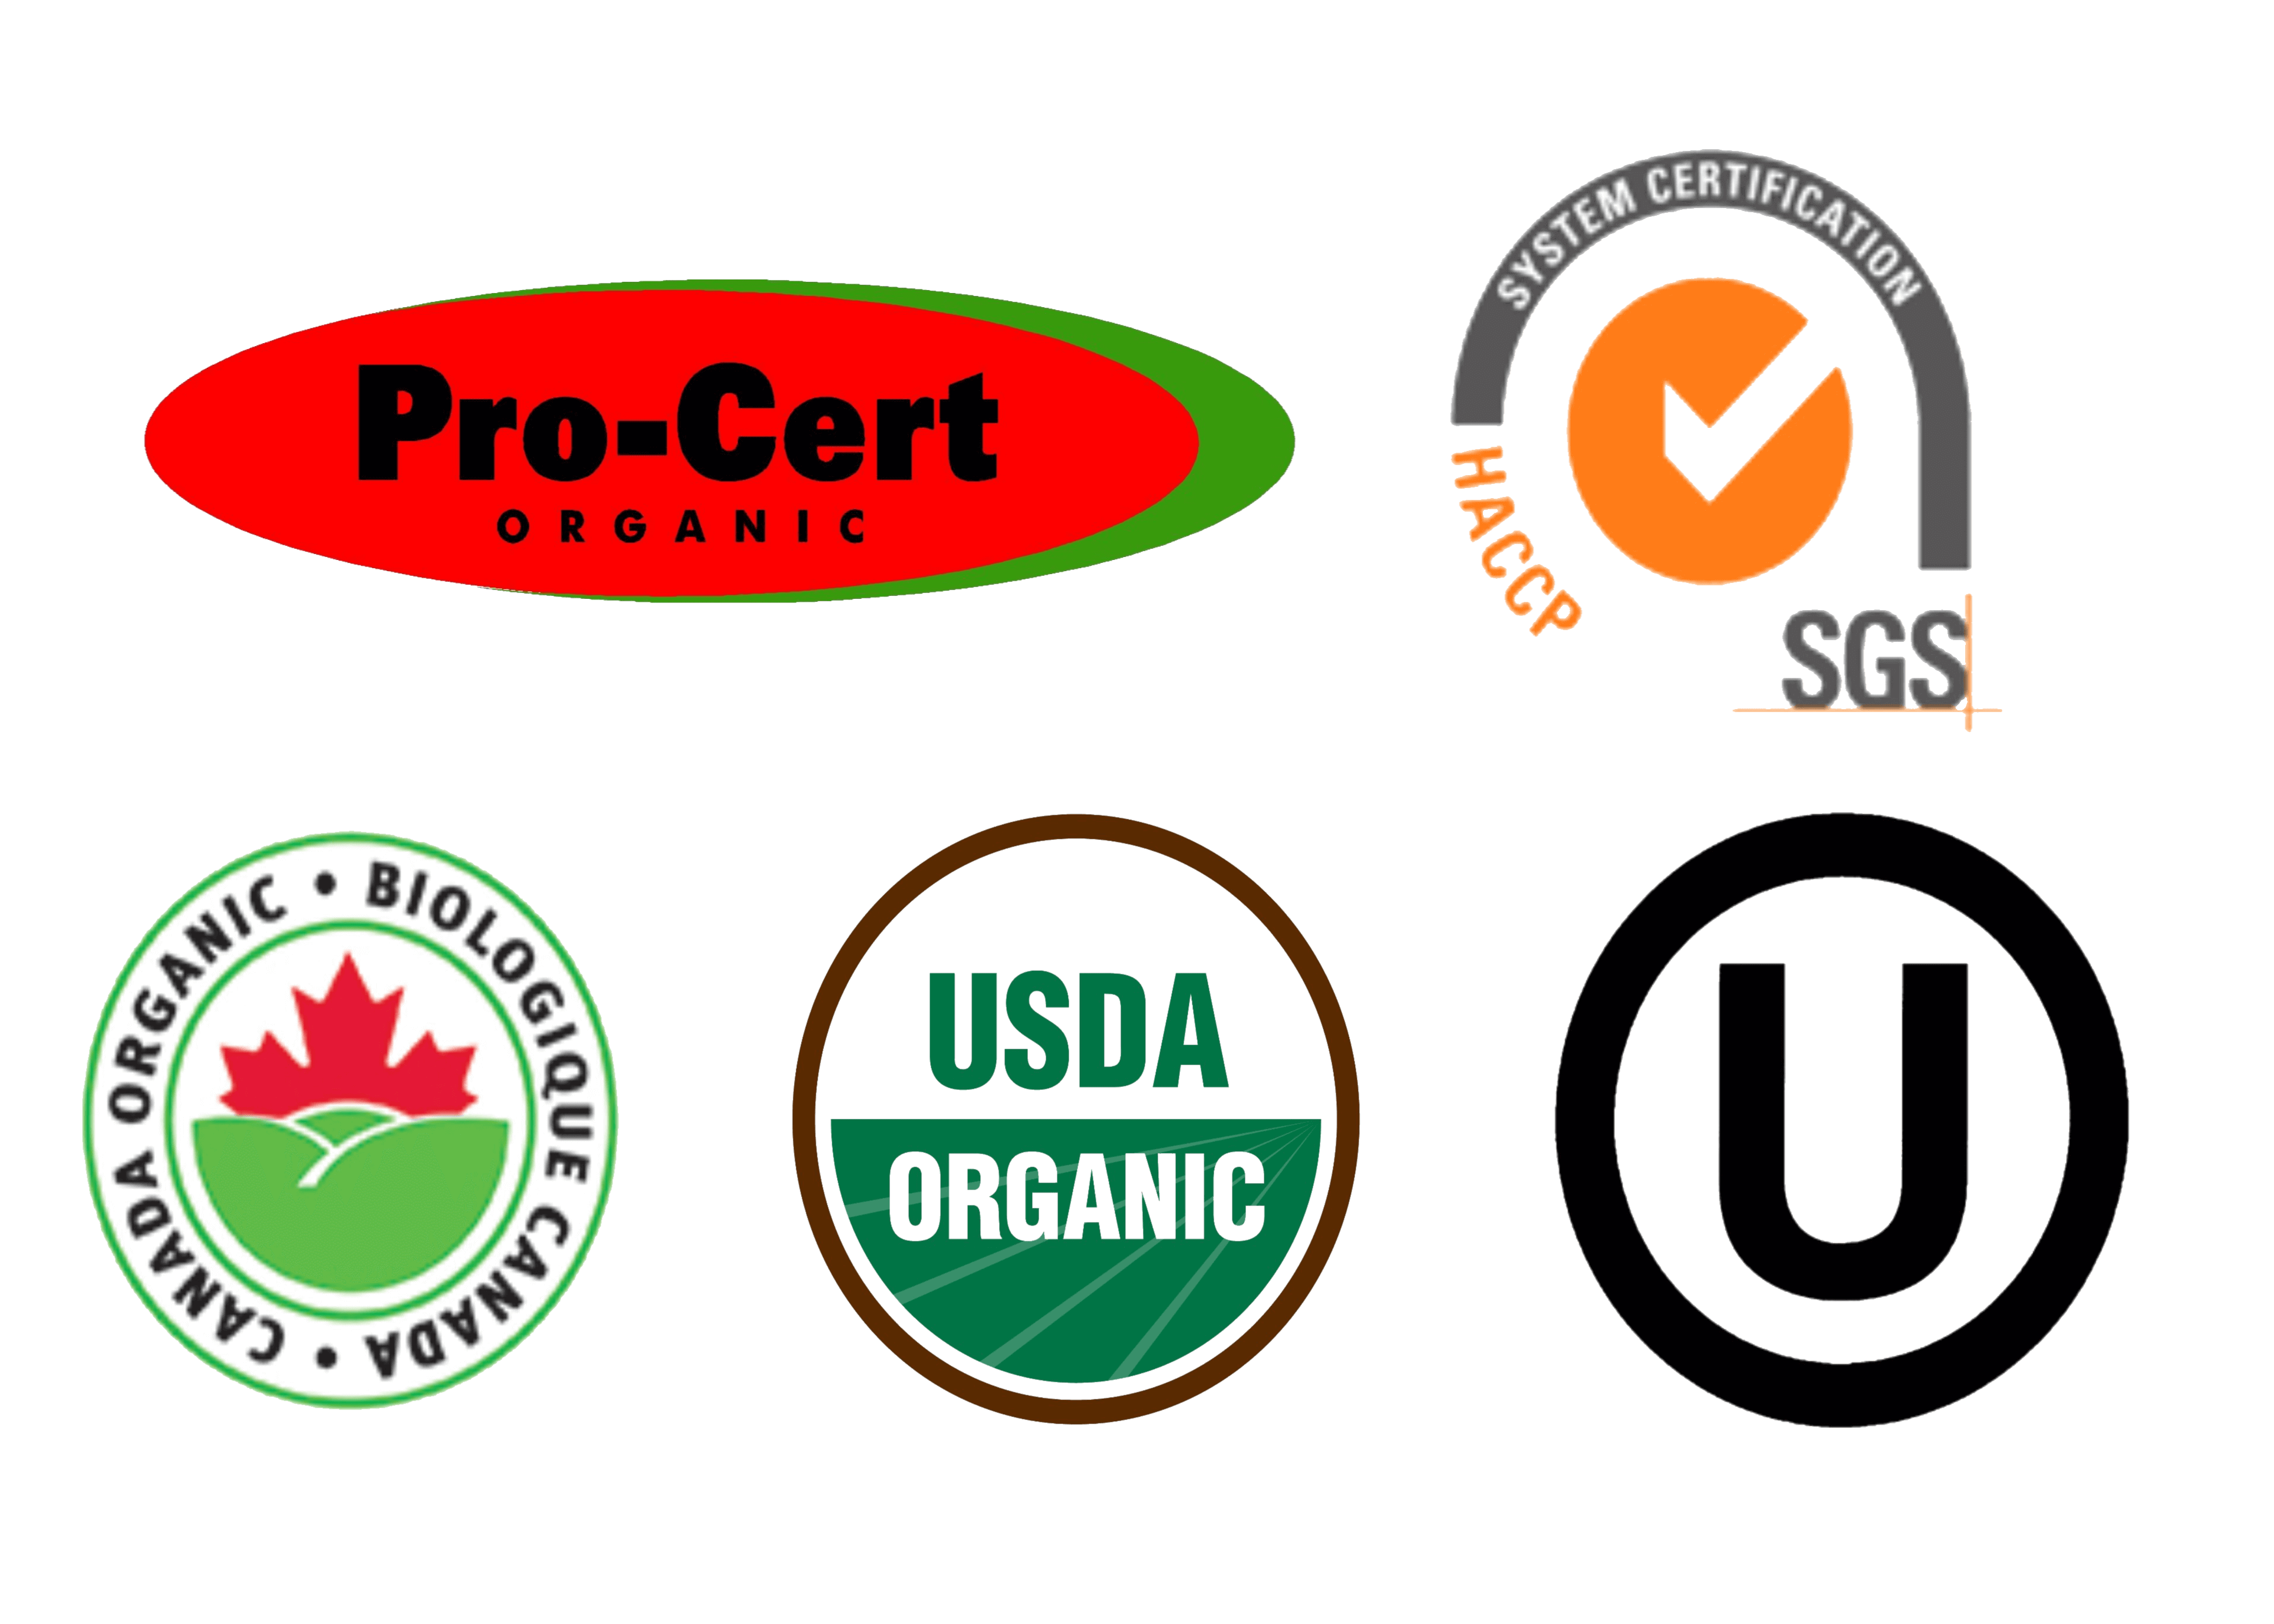 Northern Nutraceuticals Inc Products are Certified Organic - Both Canadian & USDA |Kosher Certified| HACCP & GMP Accredited by SGS